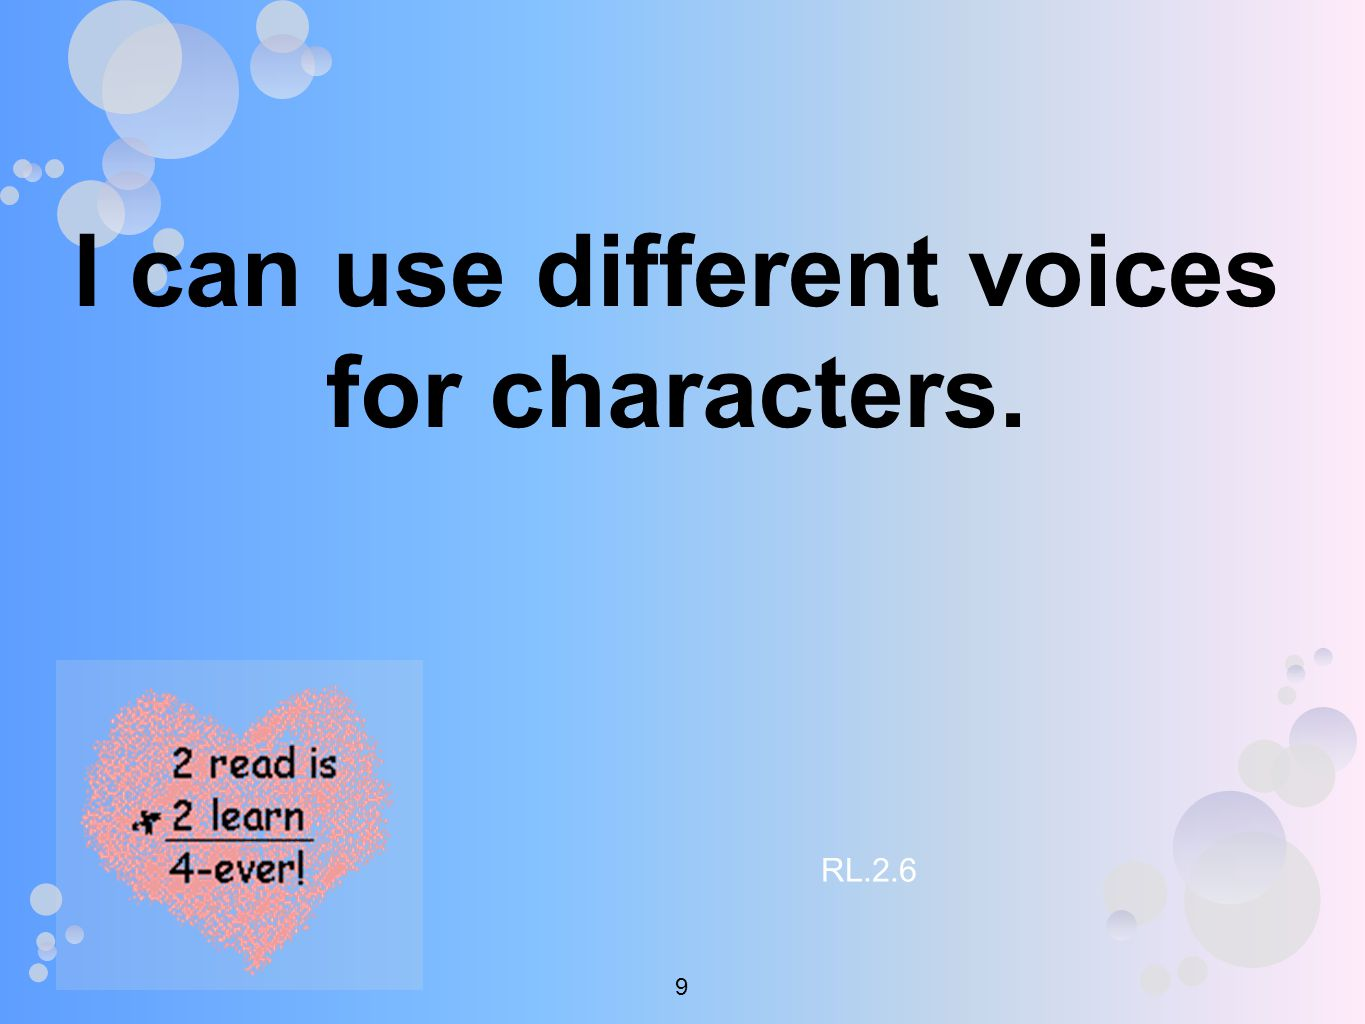 I can tell the differences in characters ideas. RL.2.6 10